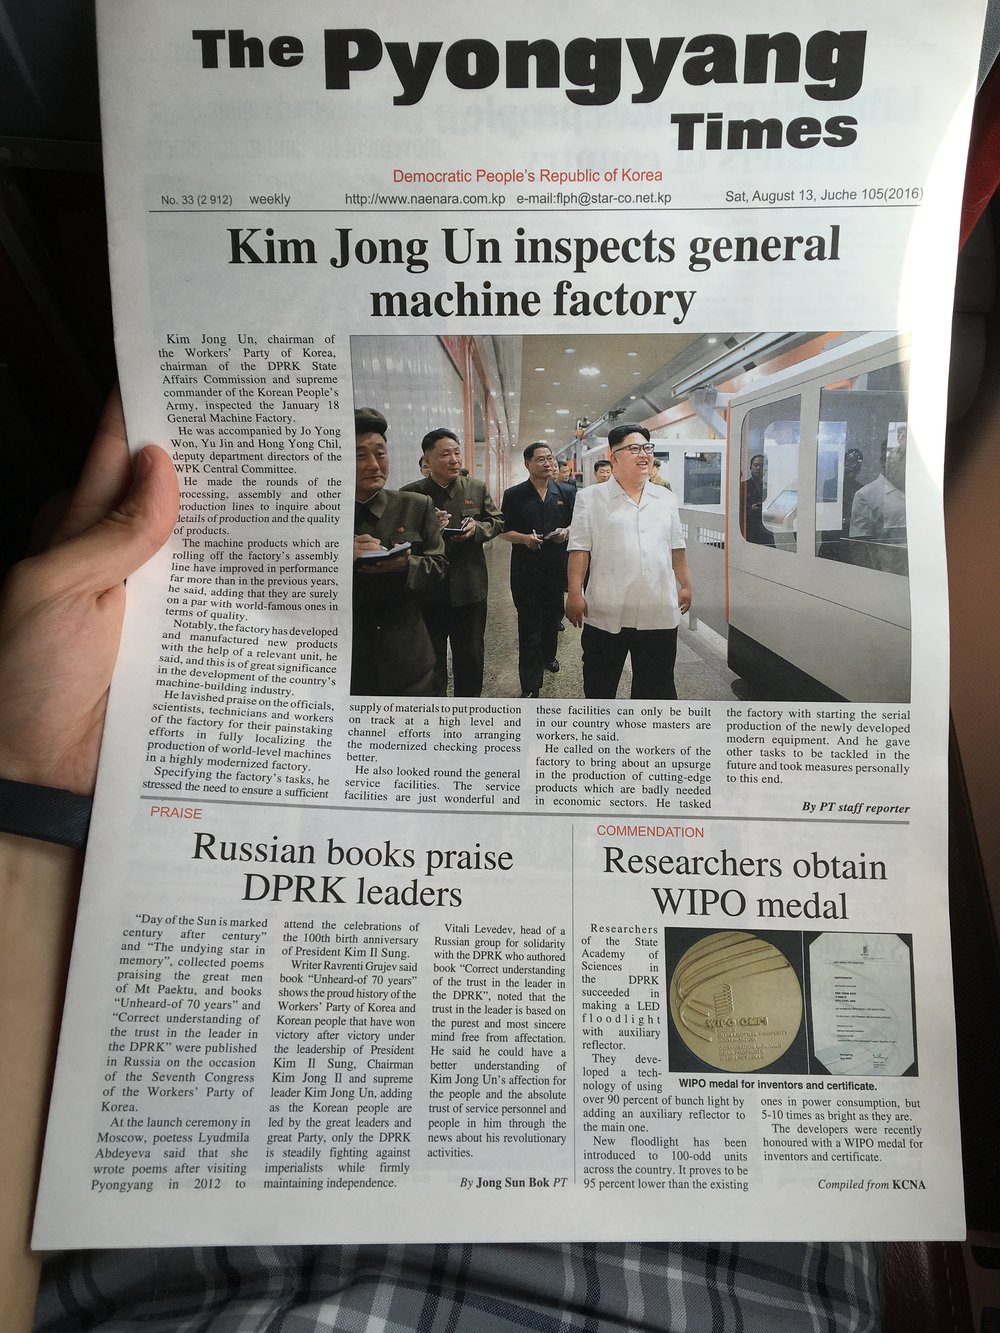 The Pyongyang Times - the official newspaper available in Korean, Chinese, and English.